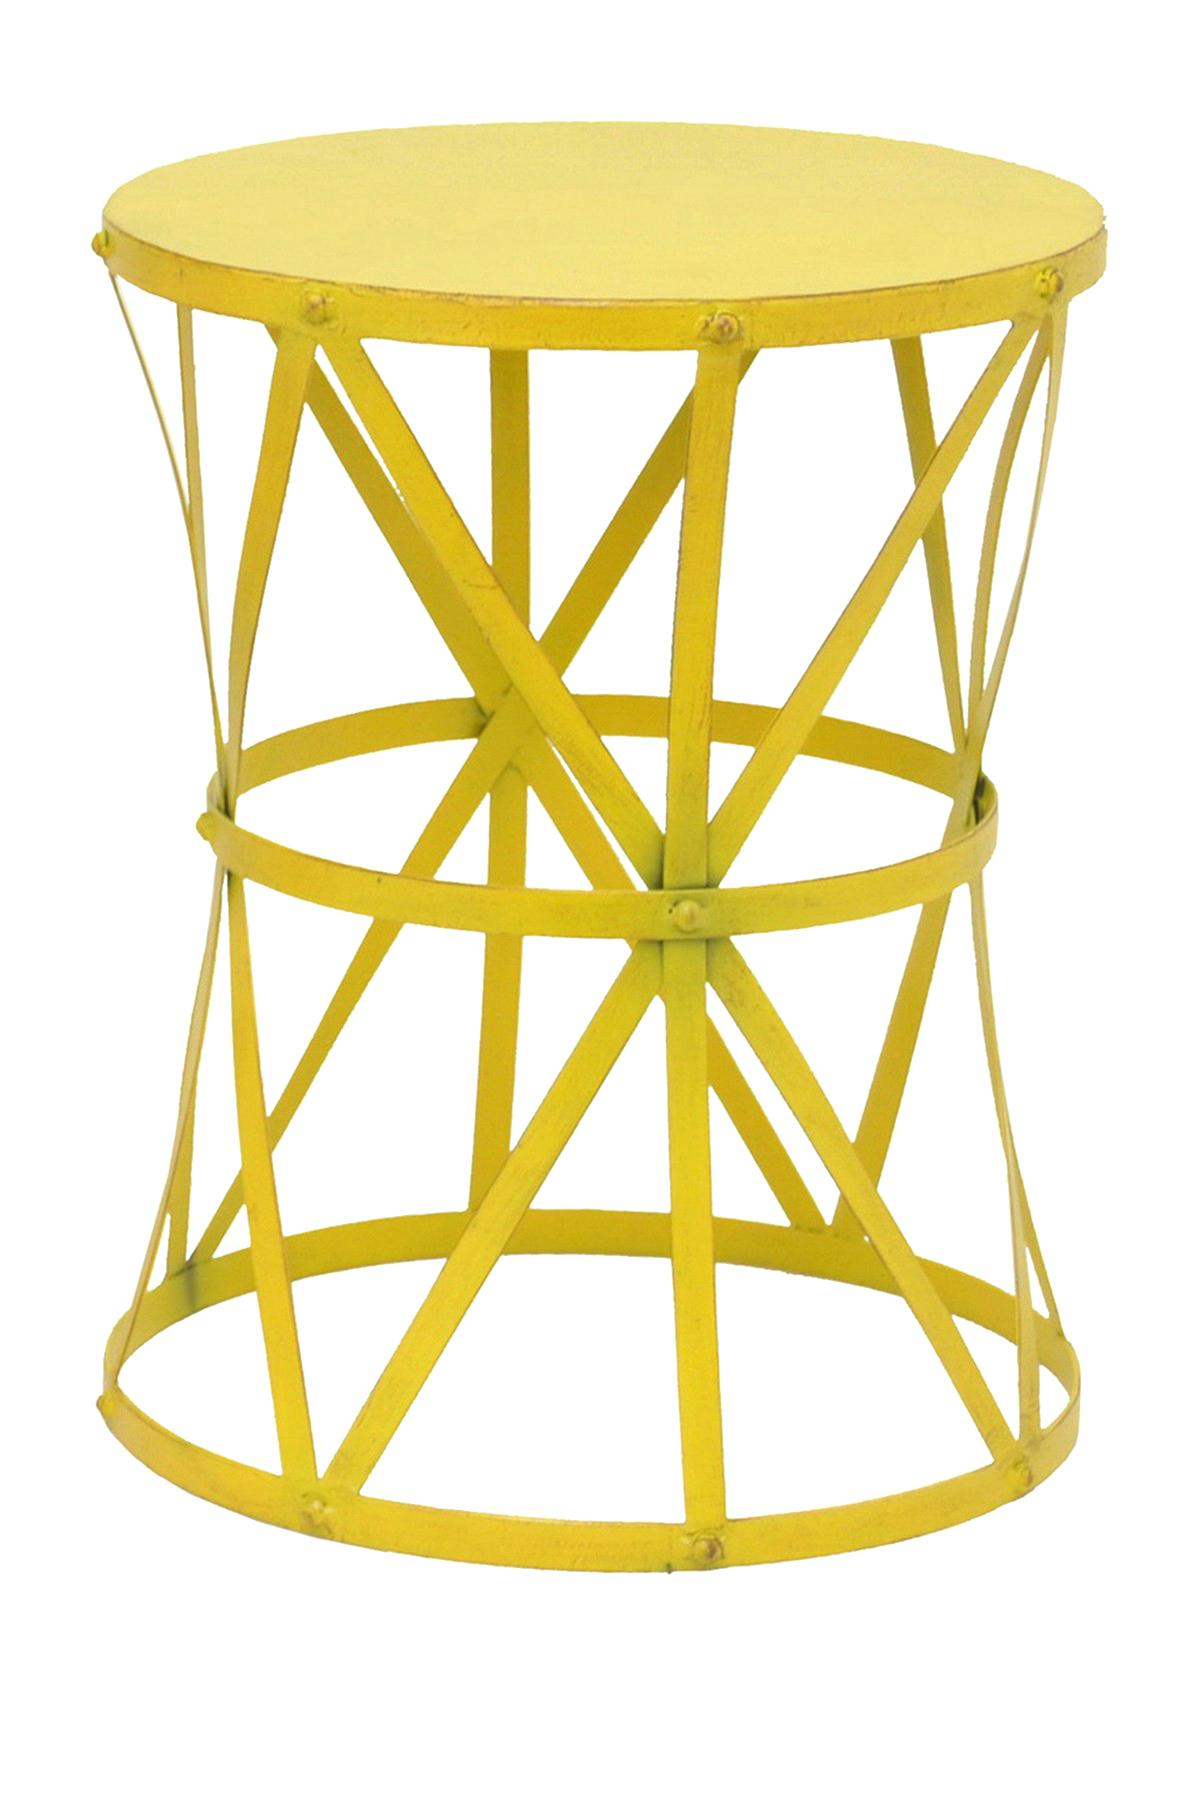 yellow accent table light storage cabinet small bomer three hands metal mustard fretwork threshold wichita furniture night lamp end covers square bedside set college room ideas